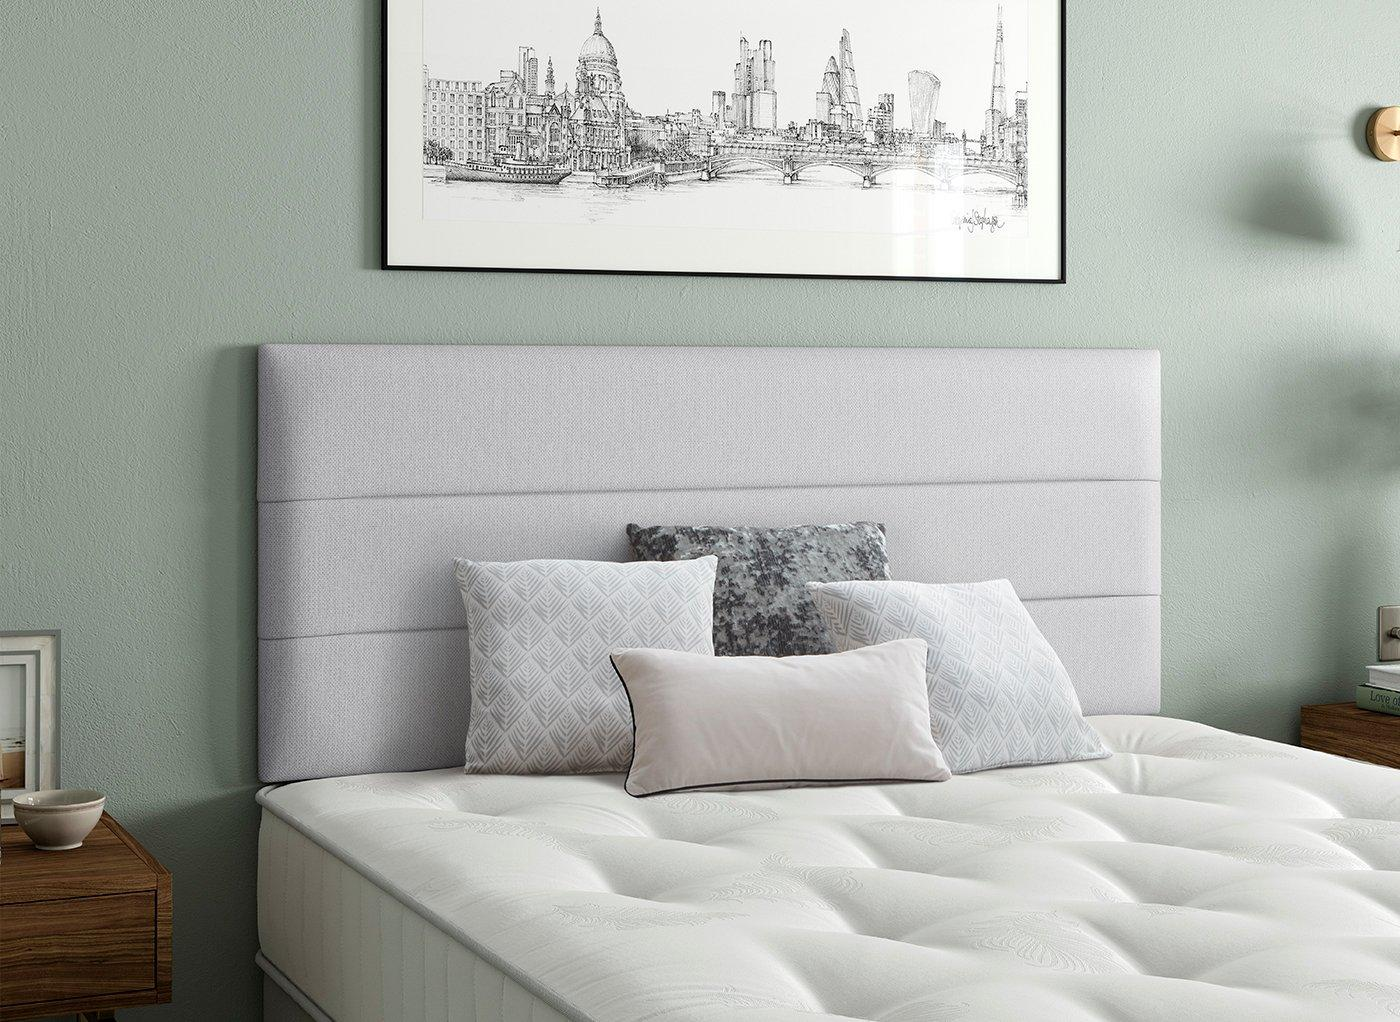 Stamford Headboard 6'0 Super king SILVER